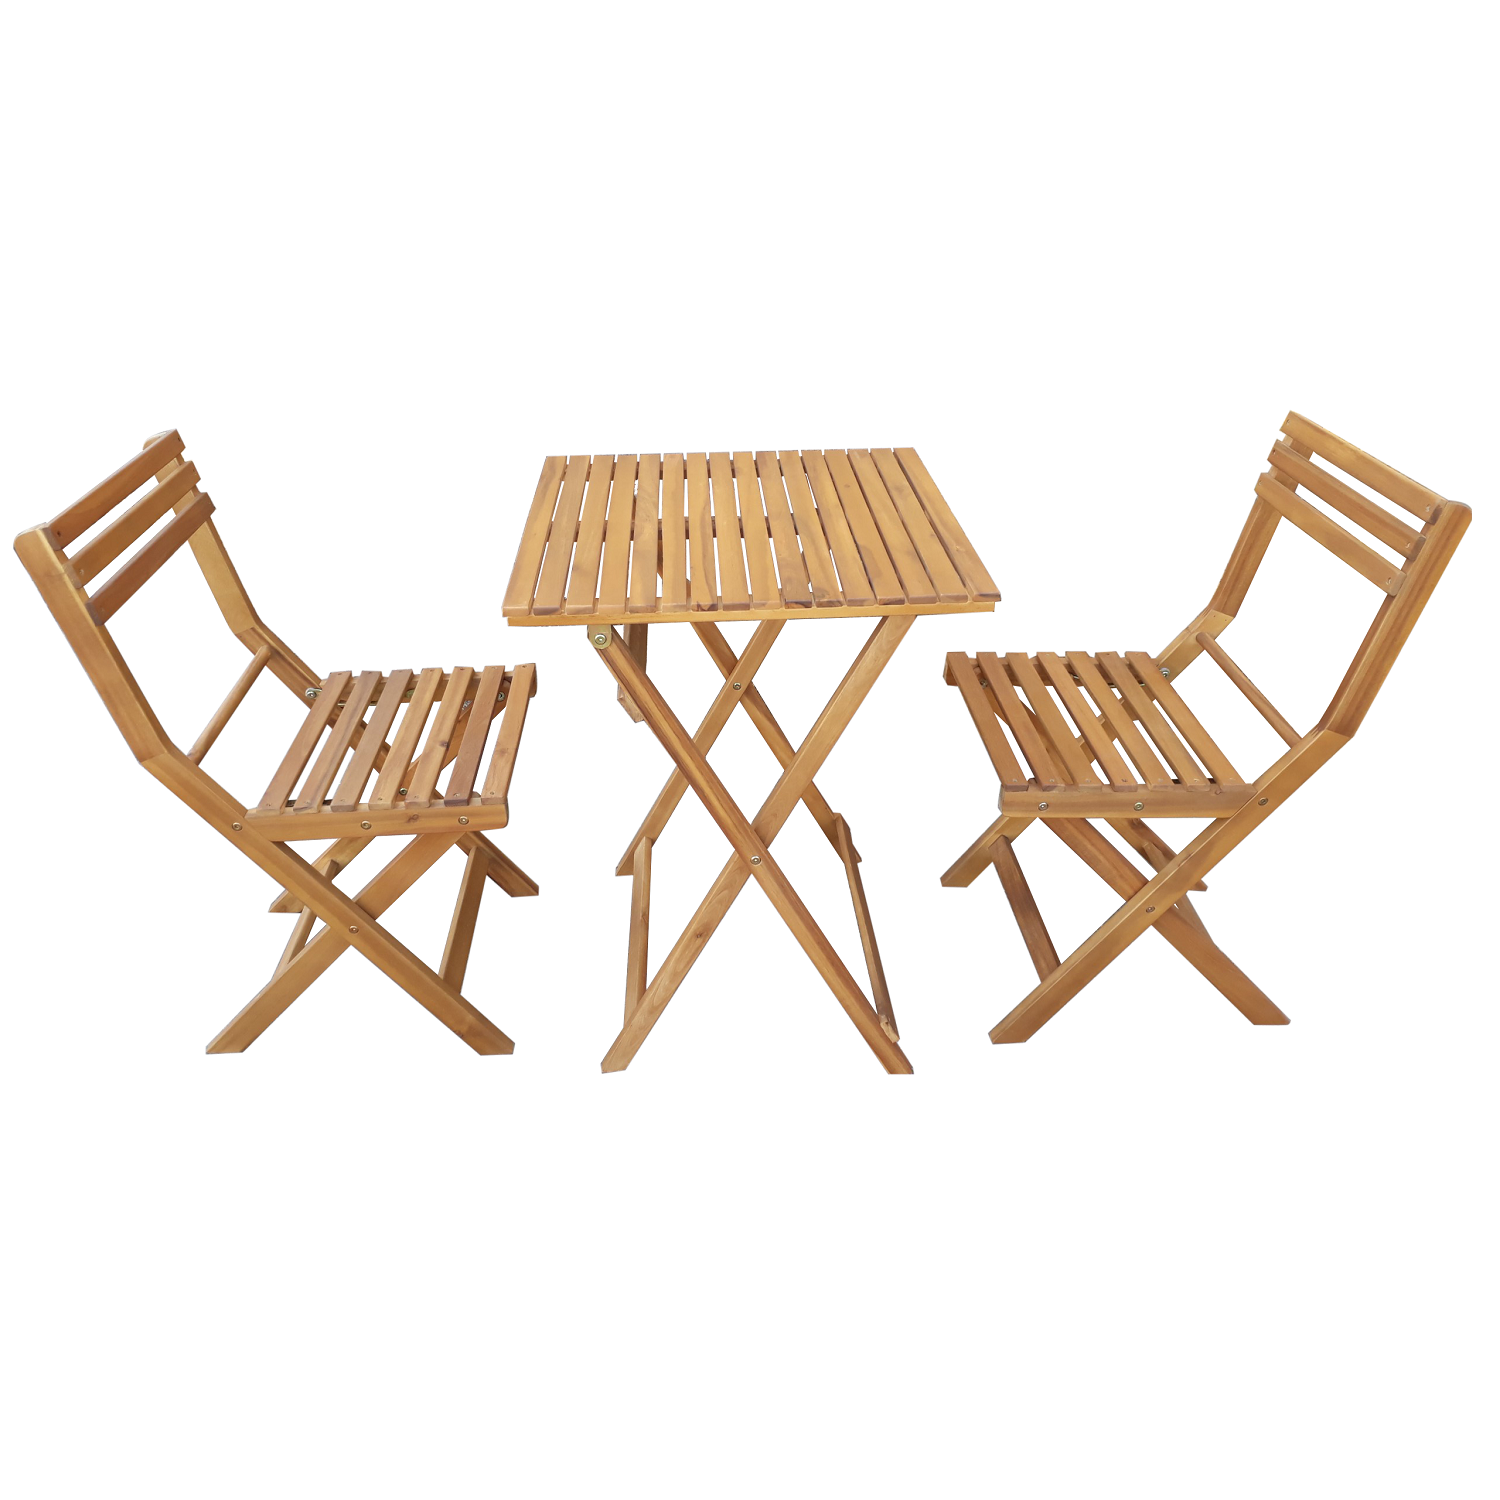 VIET NAM MODERN WOODEN BISTRO SET OUTDOOR IN TEAK LOOK